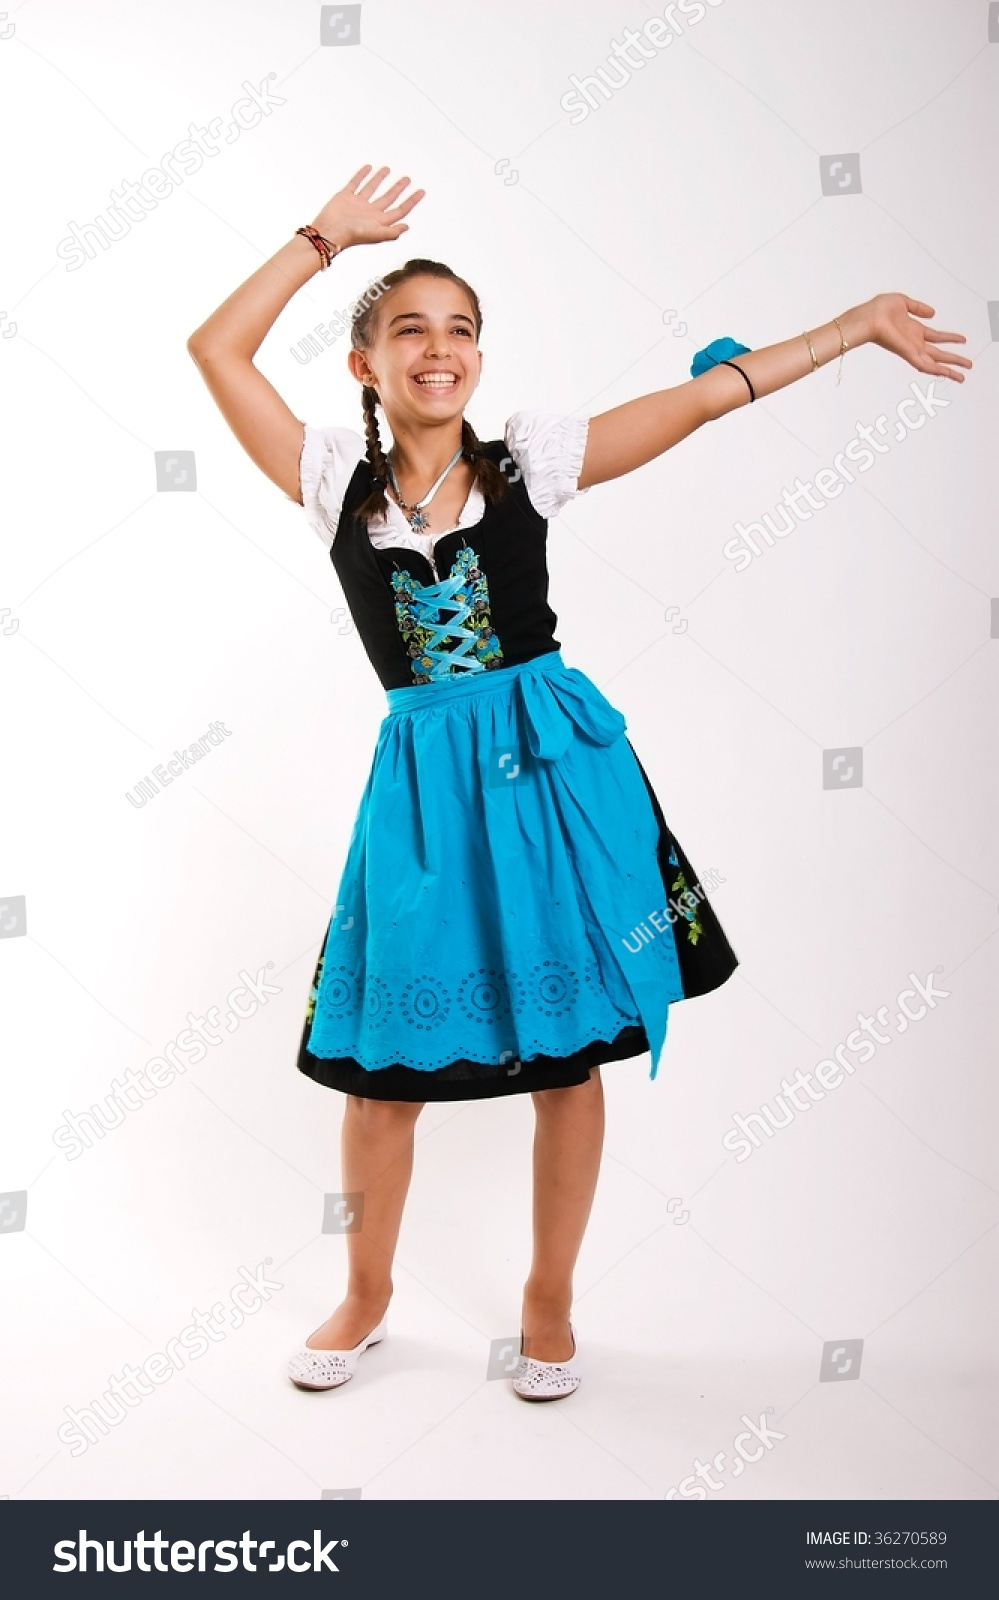 30e46075df65 Dancing Bavarian Girl Dirndl Stock Photo (Edit Now) 36270589 ...